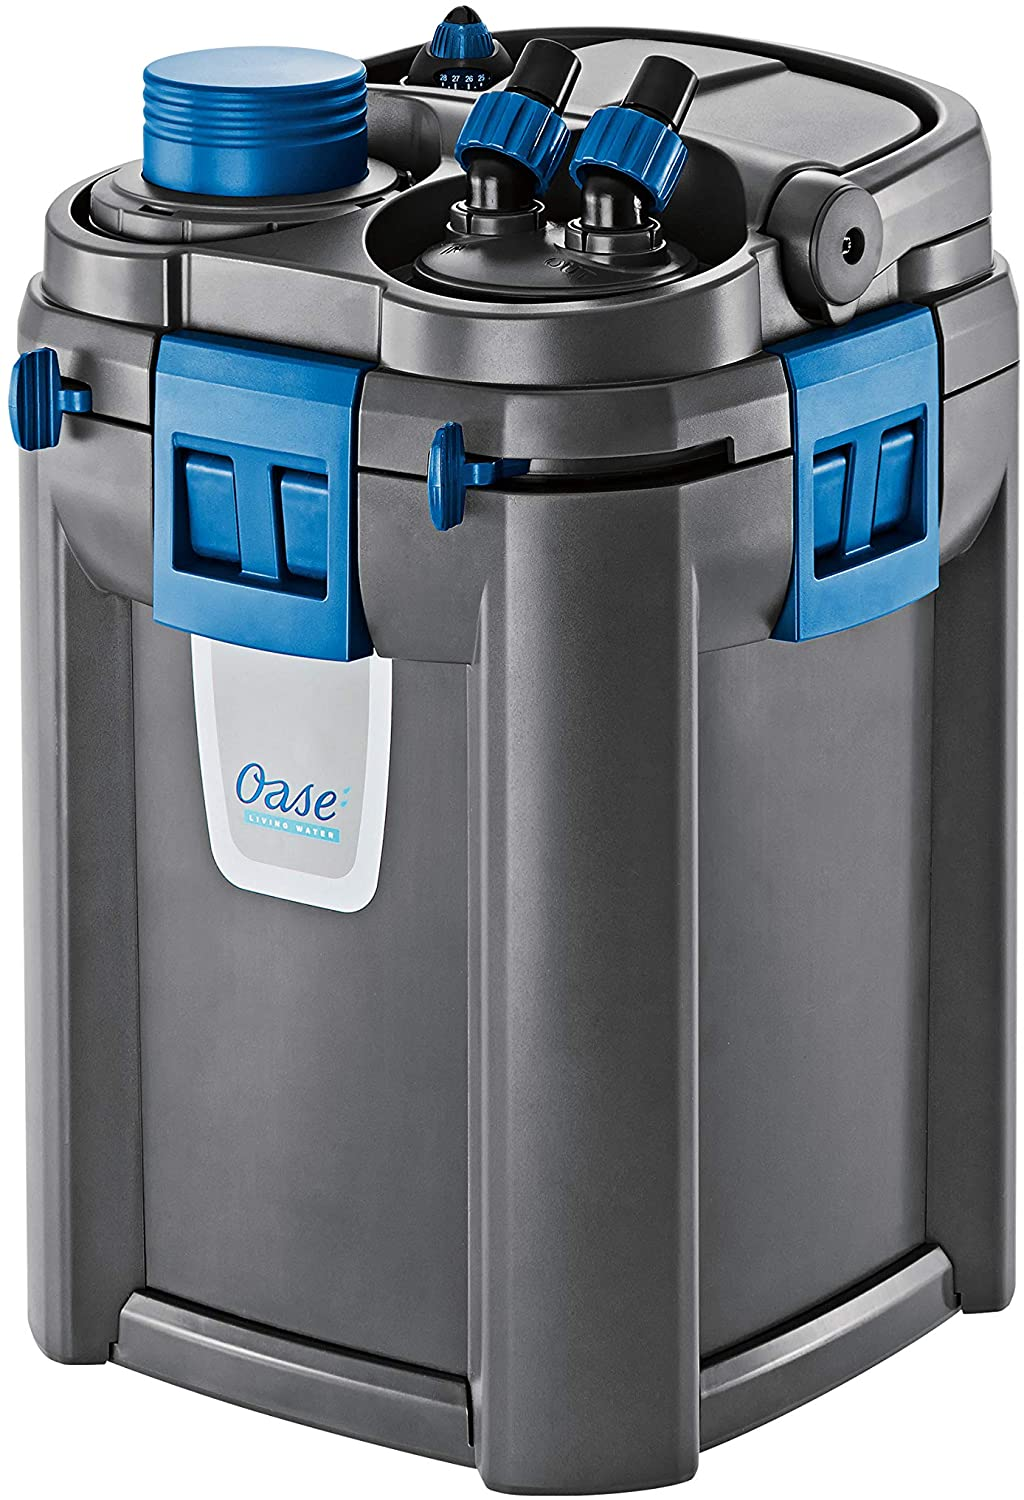 OASE indoor aquatics biomaster thermo the best canister filter review